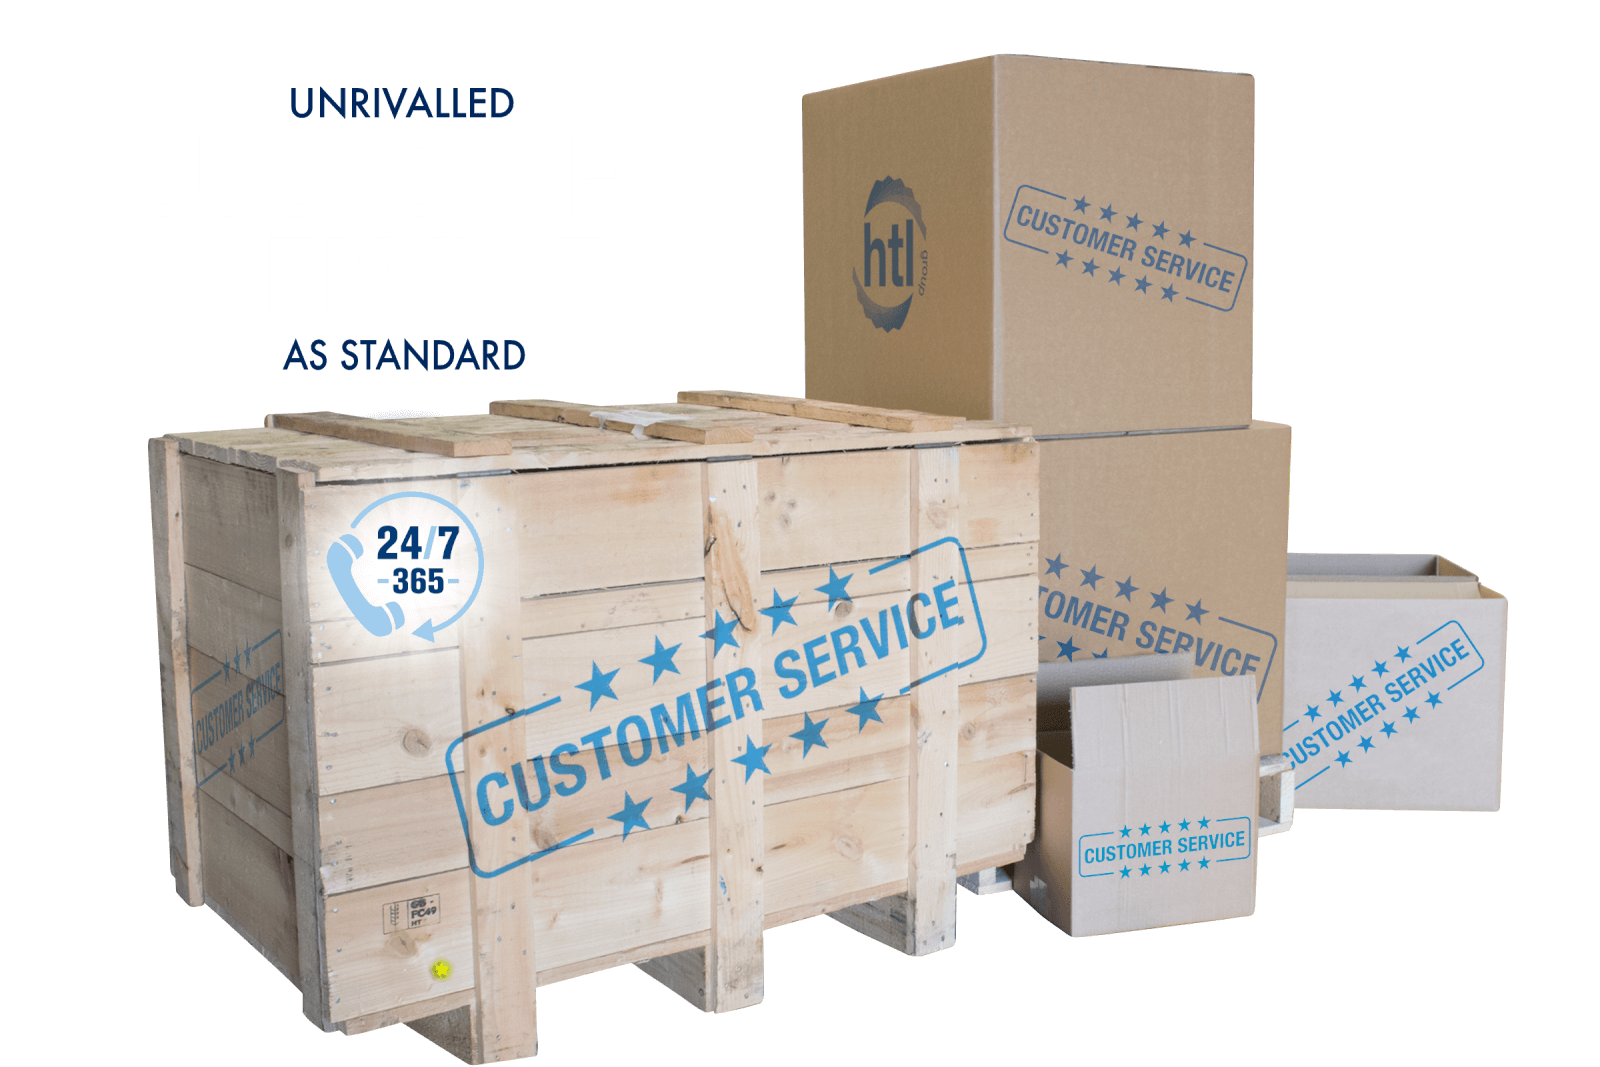 Customer Service as Standard from HTL Group